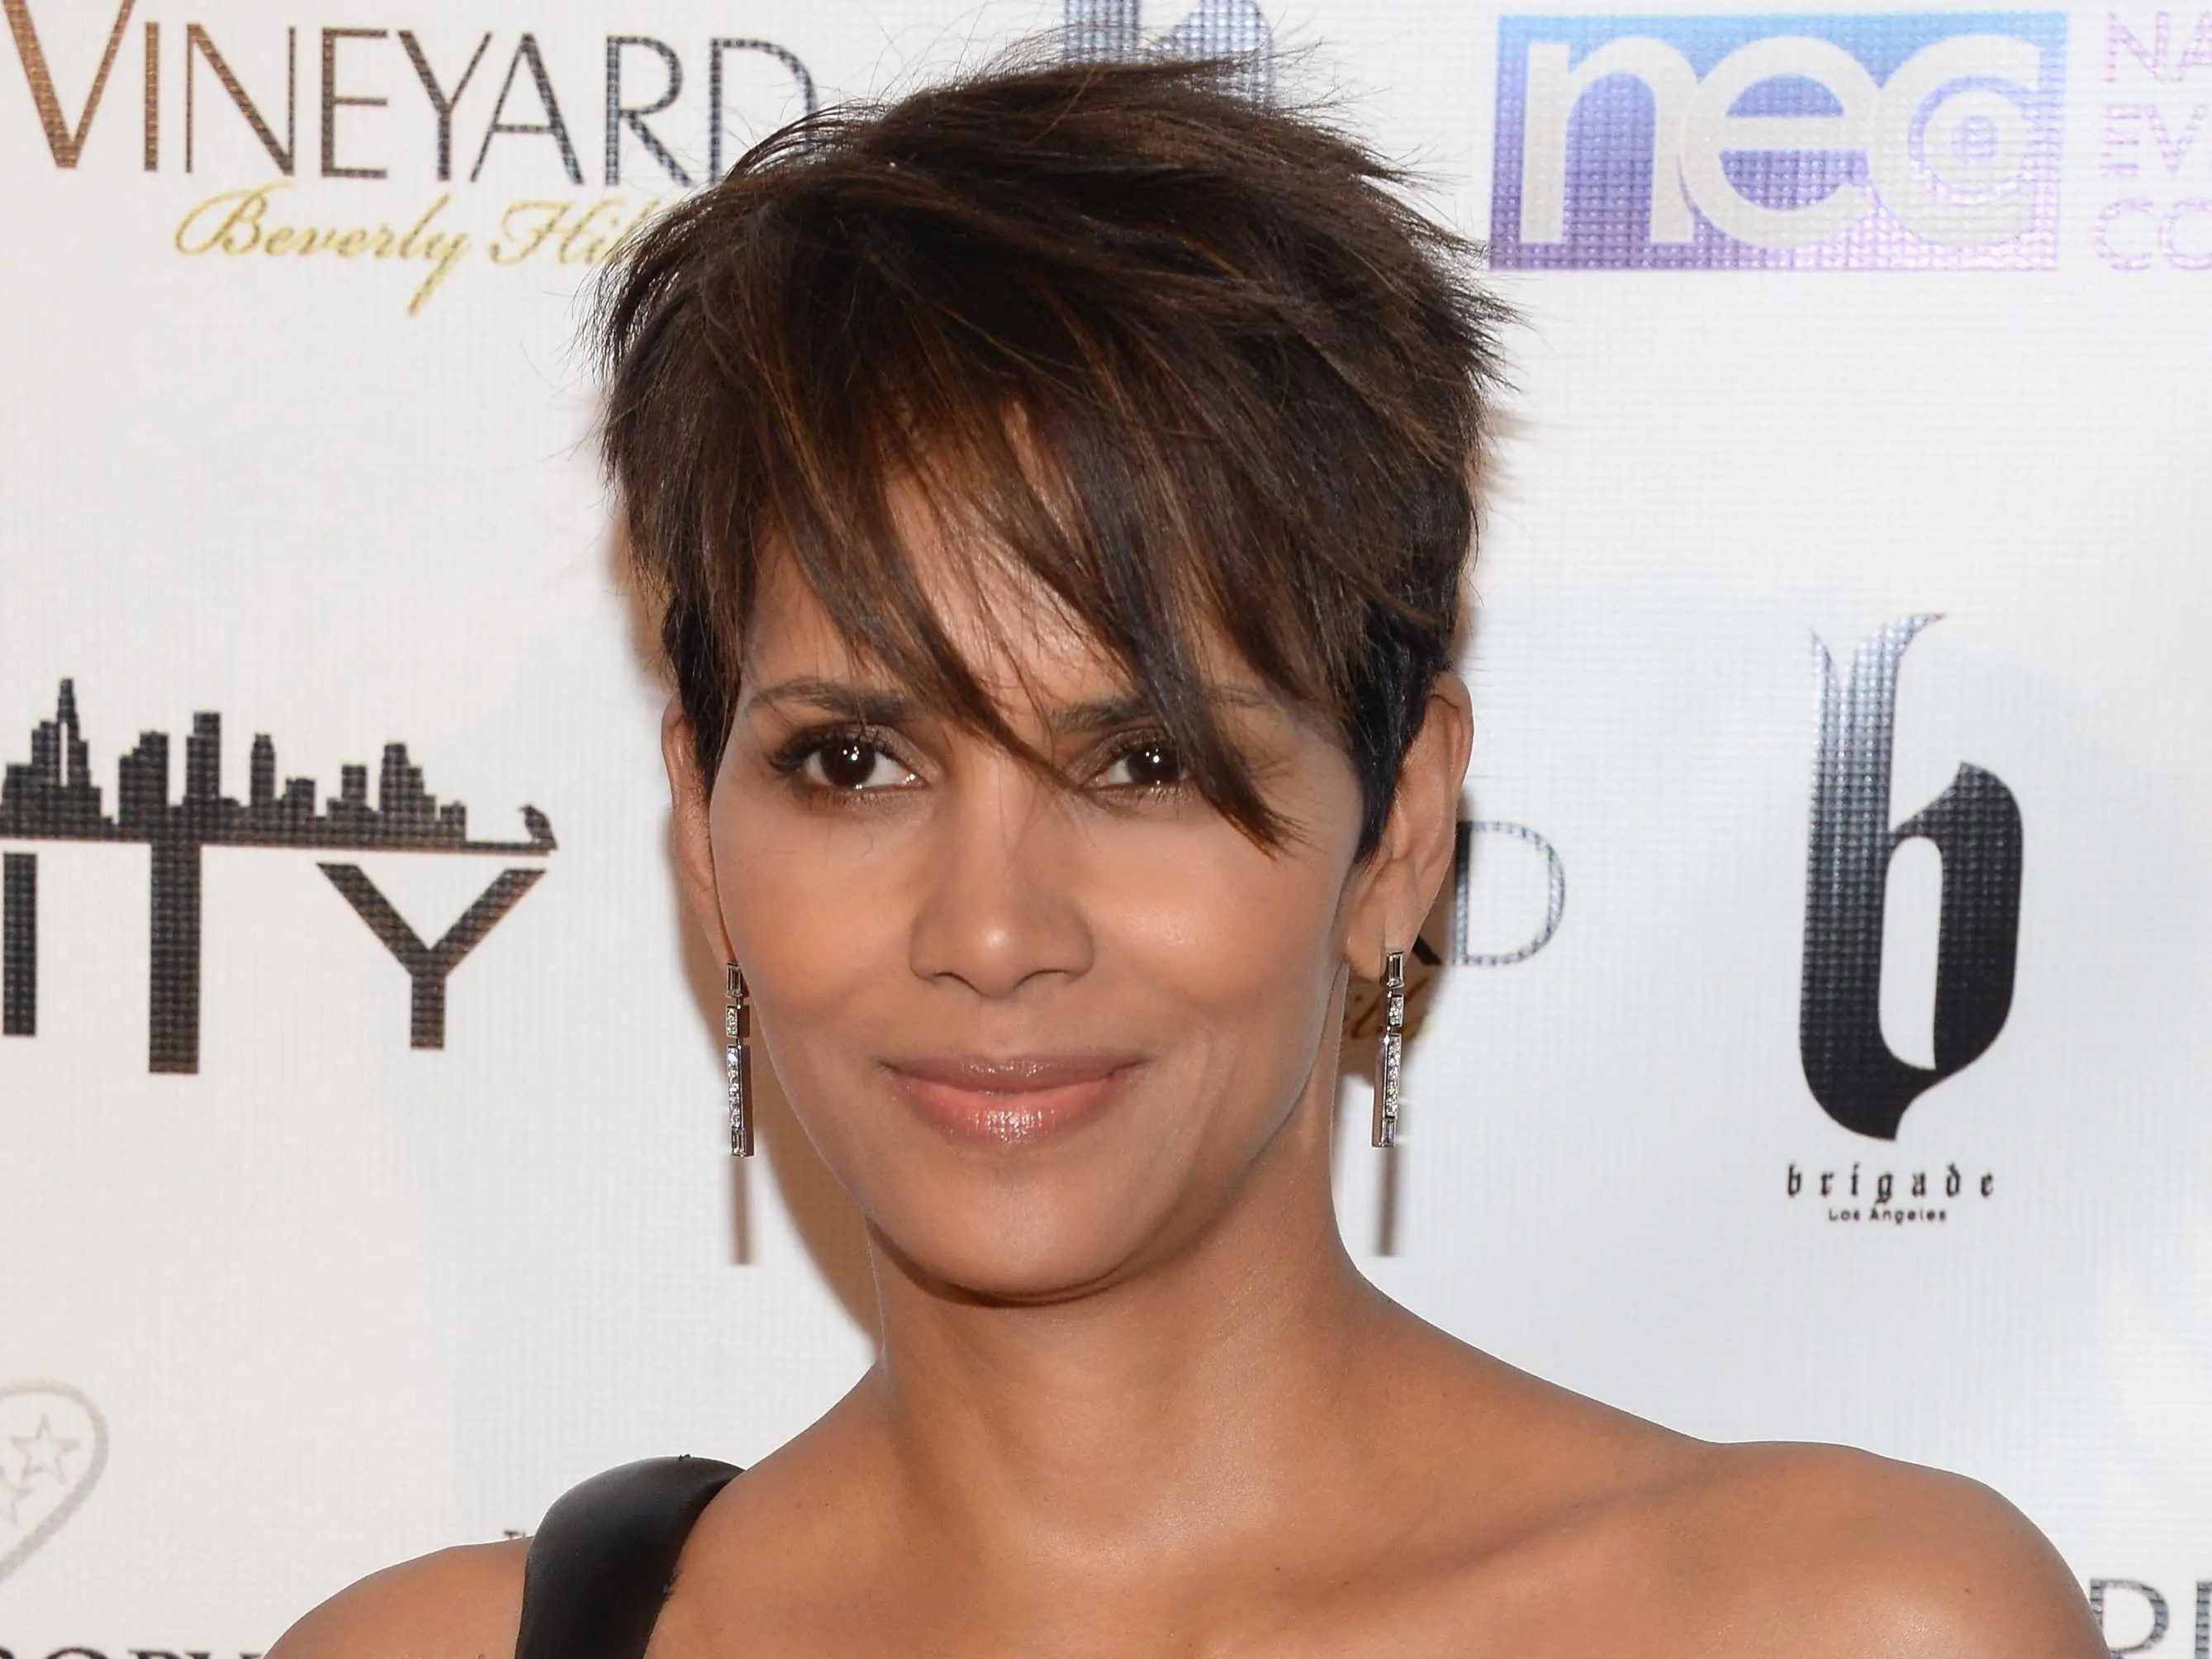 Oscar winner Halle Berry once stayed in a homeless shelter in her early 20s.